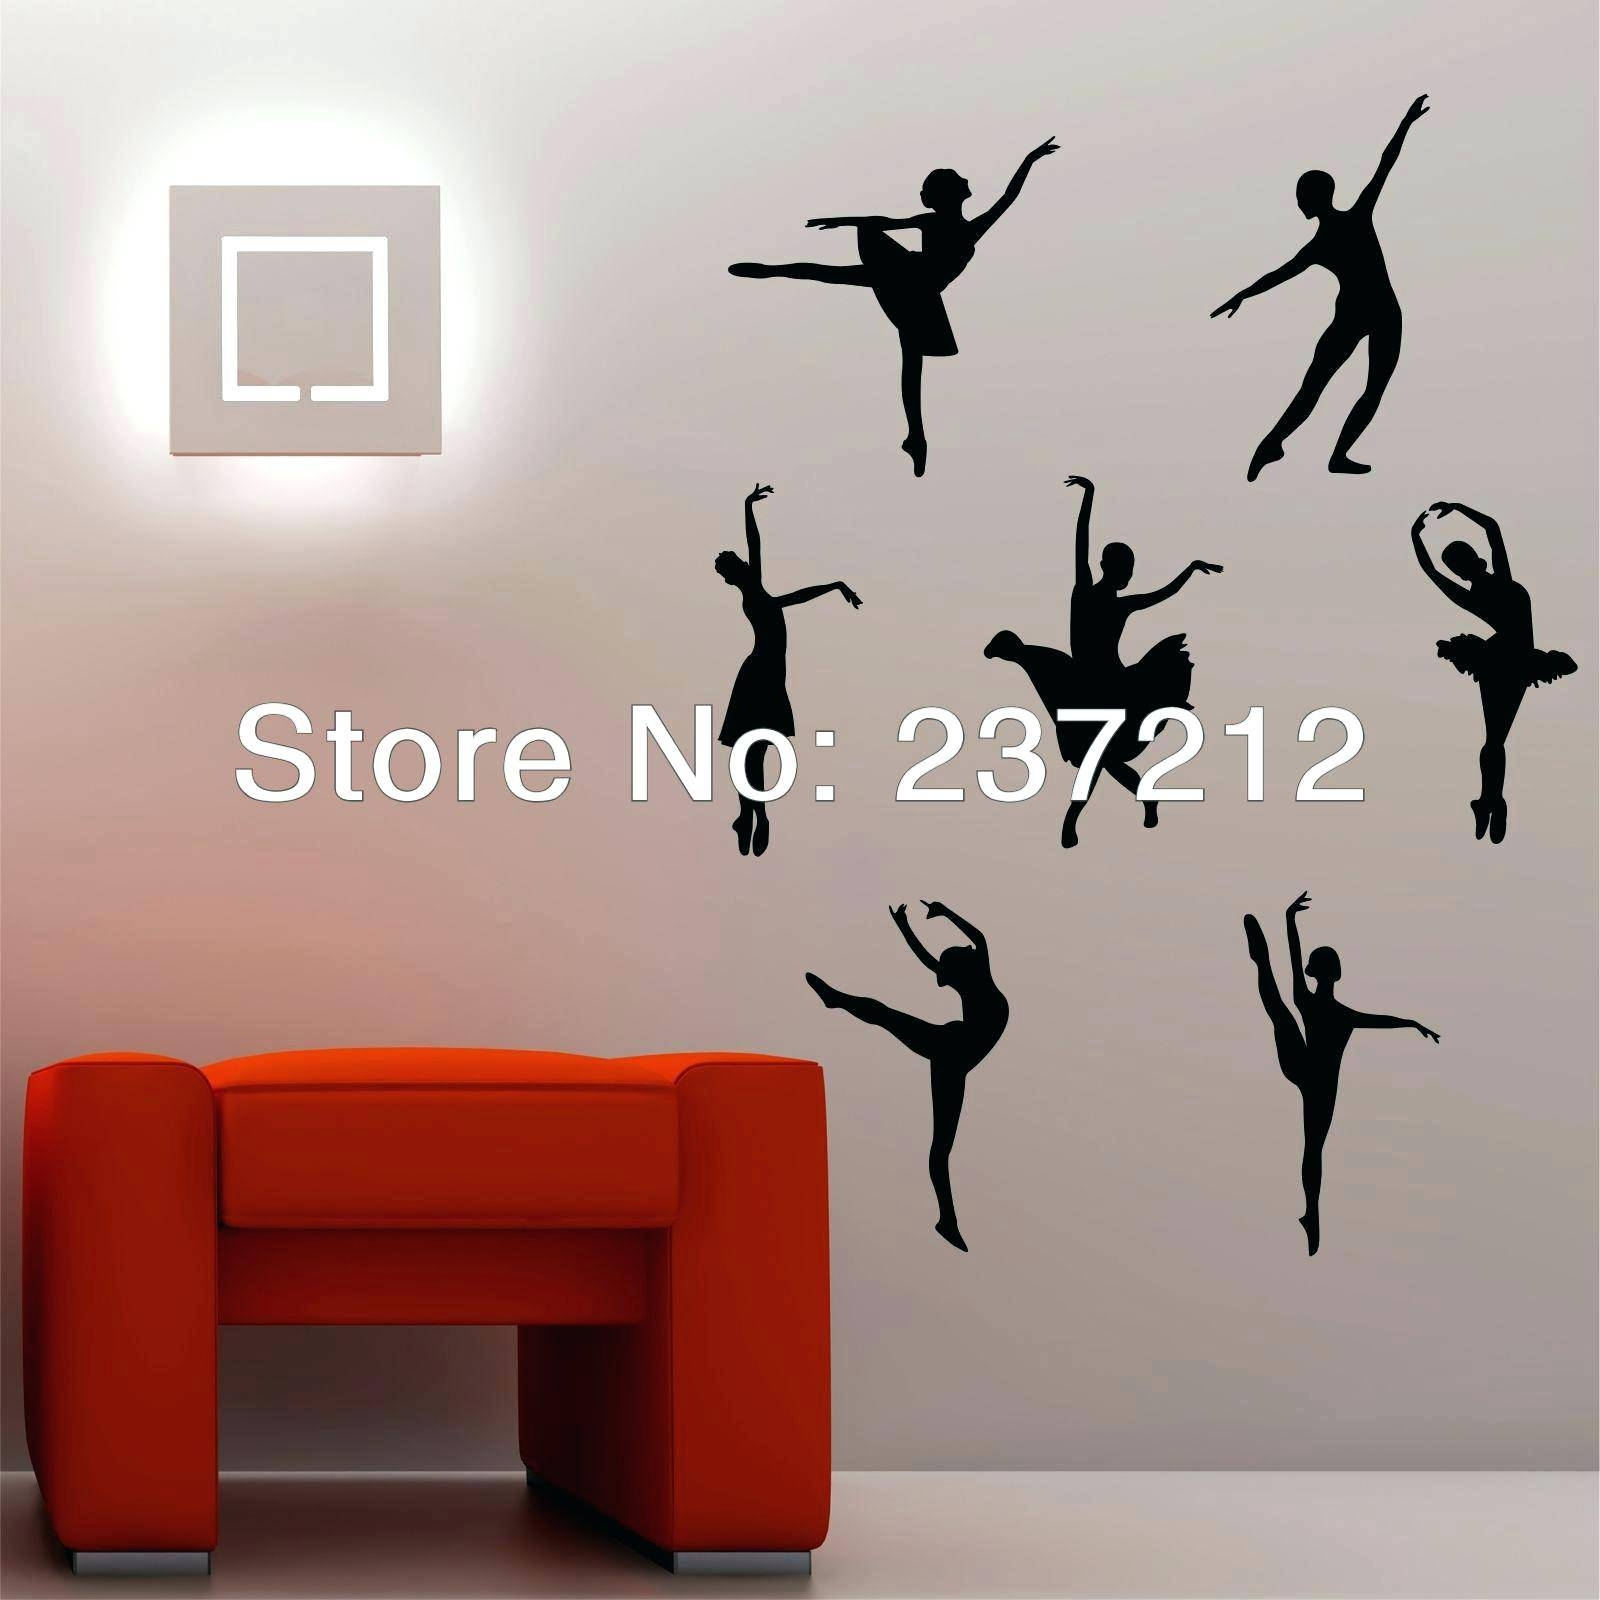 Dancer Silhouette Wall Decals Wall Ideas Floral Silhouette Metal Pertaining To Best And Newest Metal Wall Art Dancers (View 8 of 20)